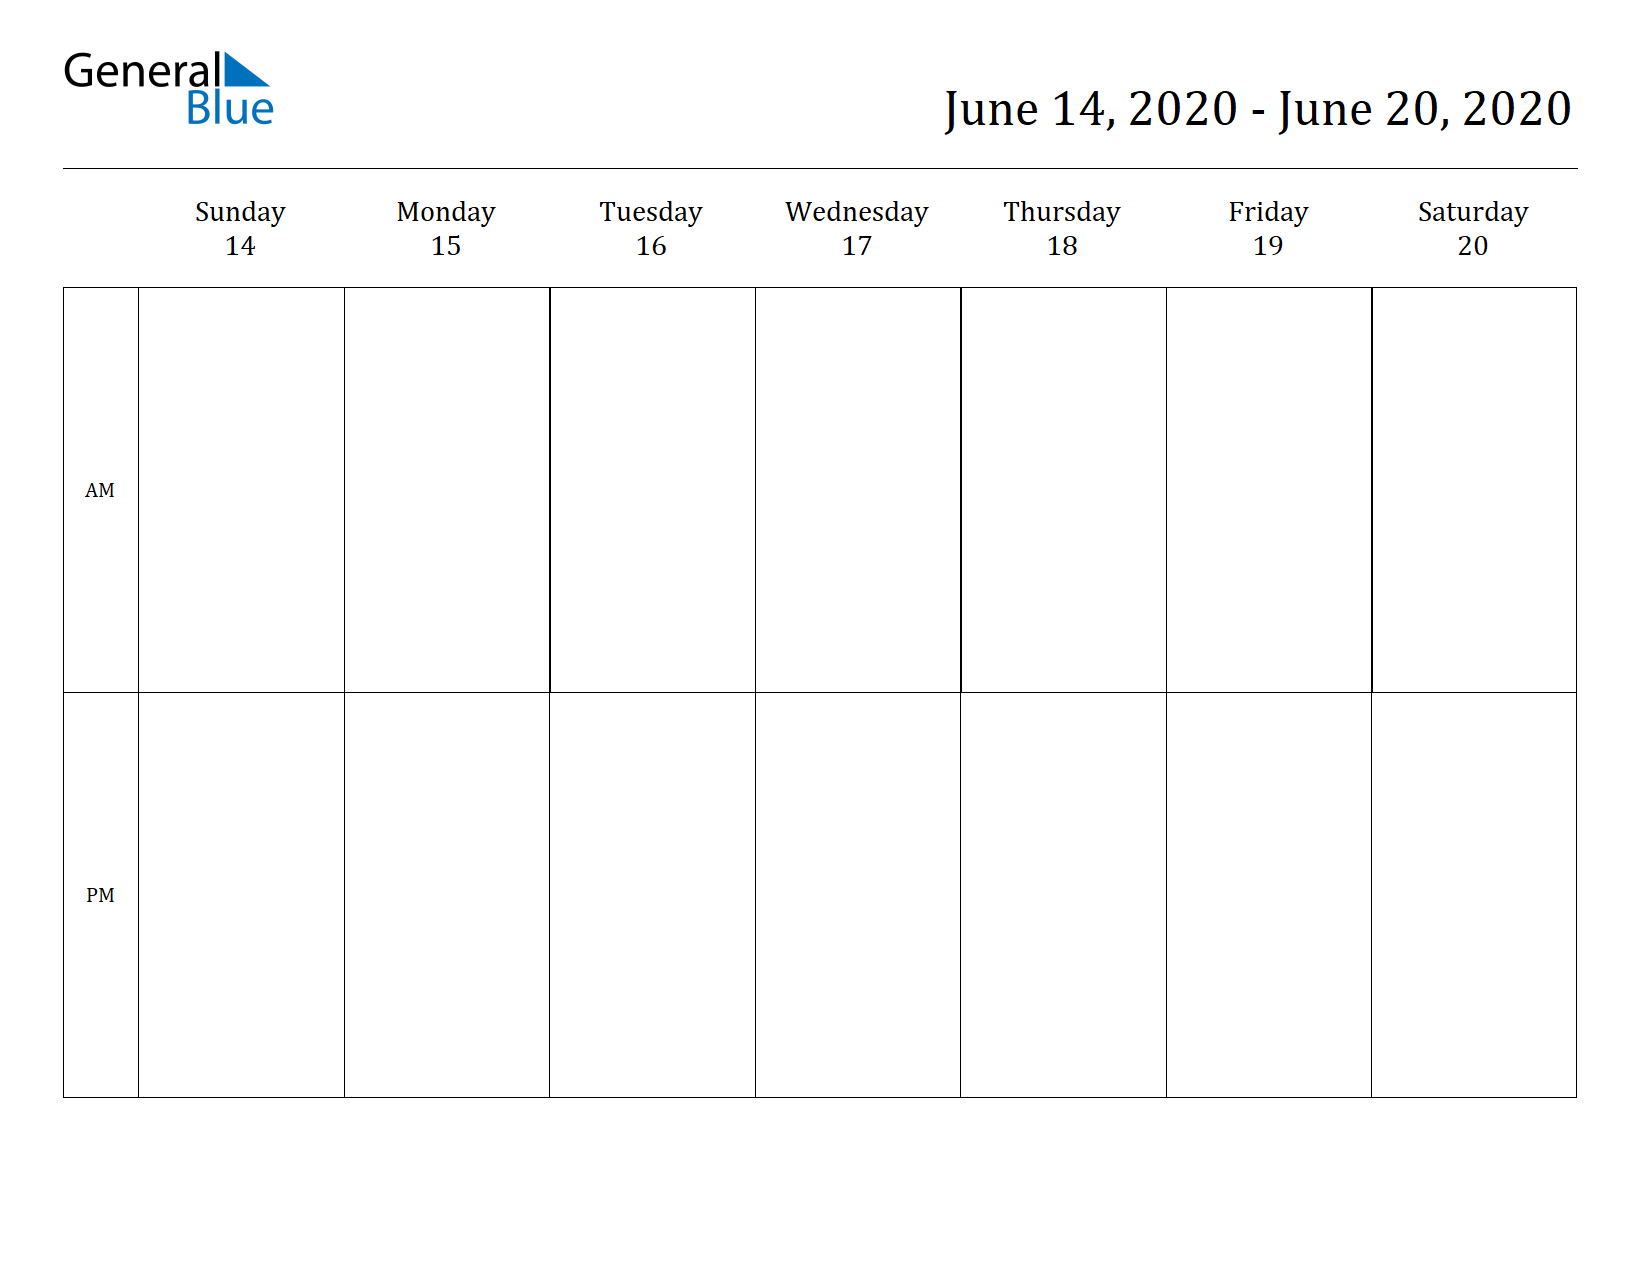 Weekly Calendar for Jun 14, 2020 to Jun 20, 2020